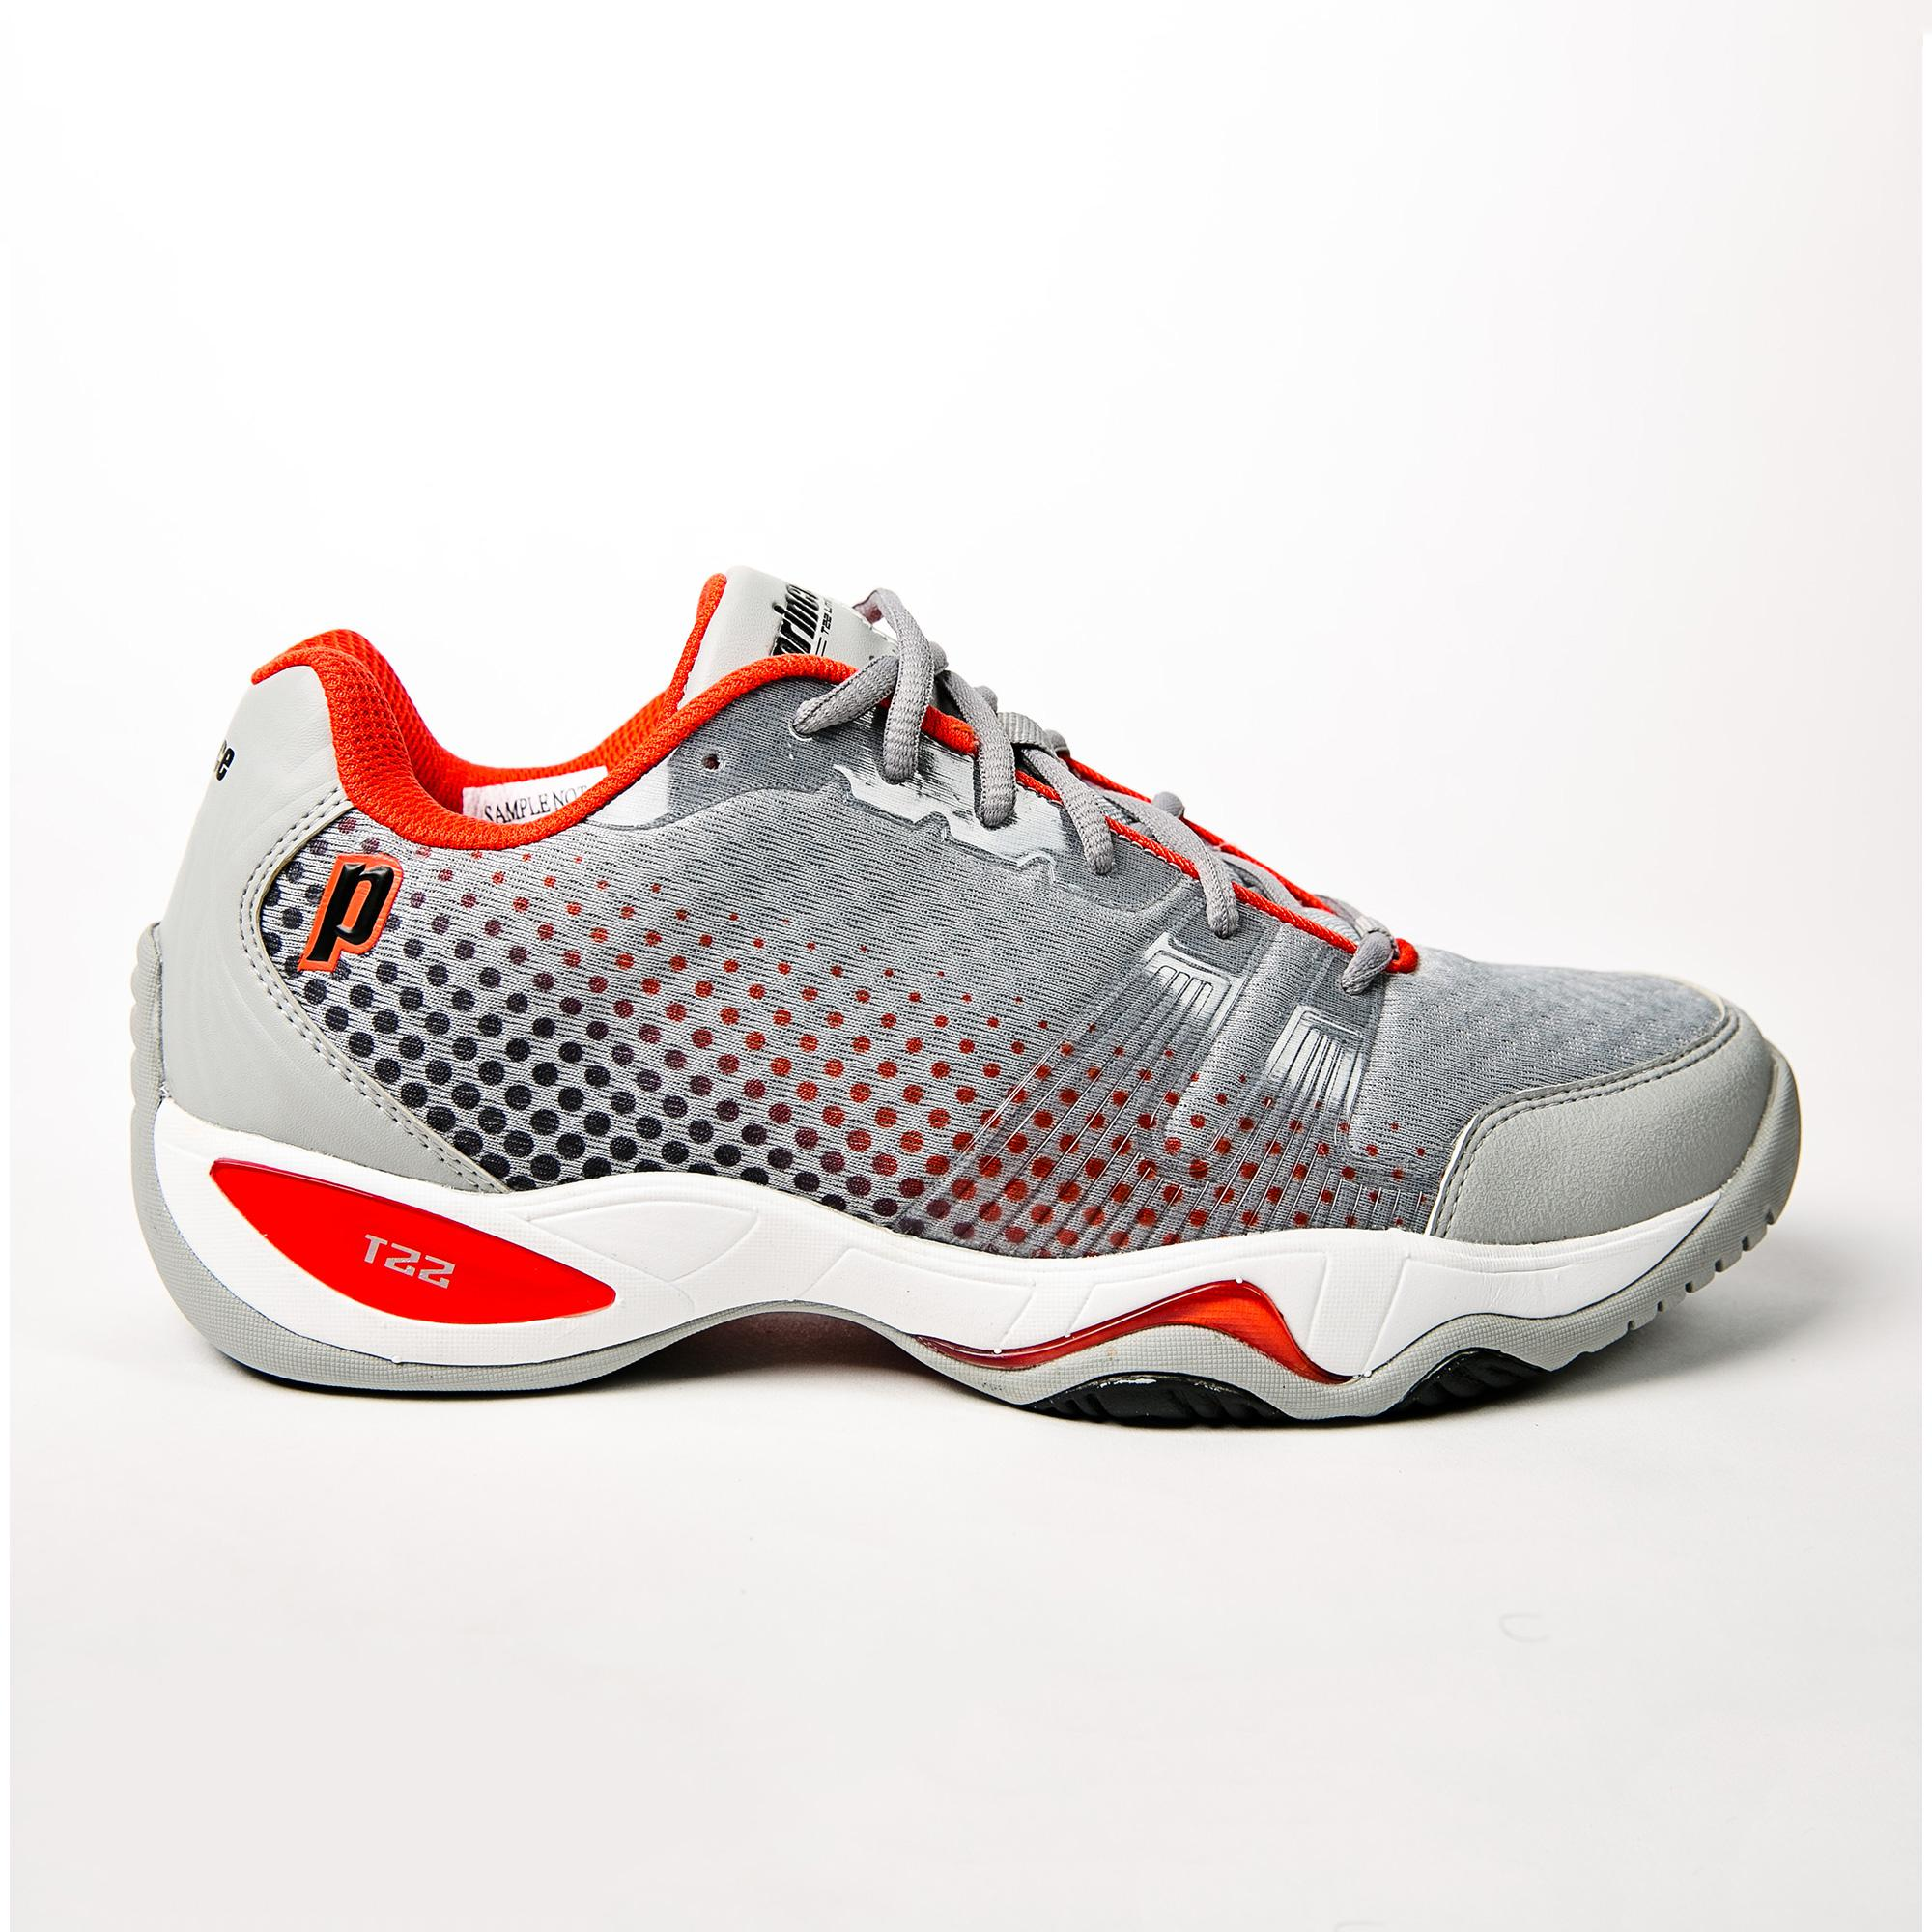 0766fae4924c Prince Mens T22 Lite Tennis Shoes - Grey Black Red - Tennisnuts.com